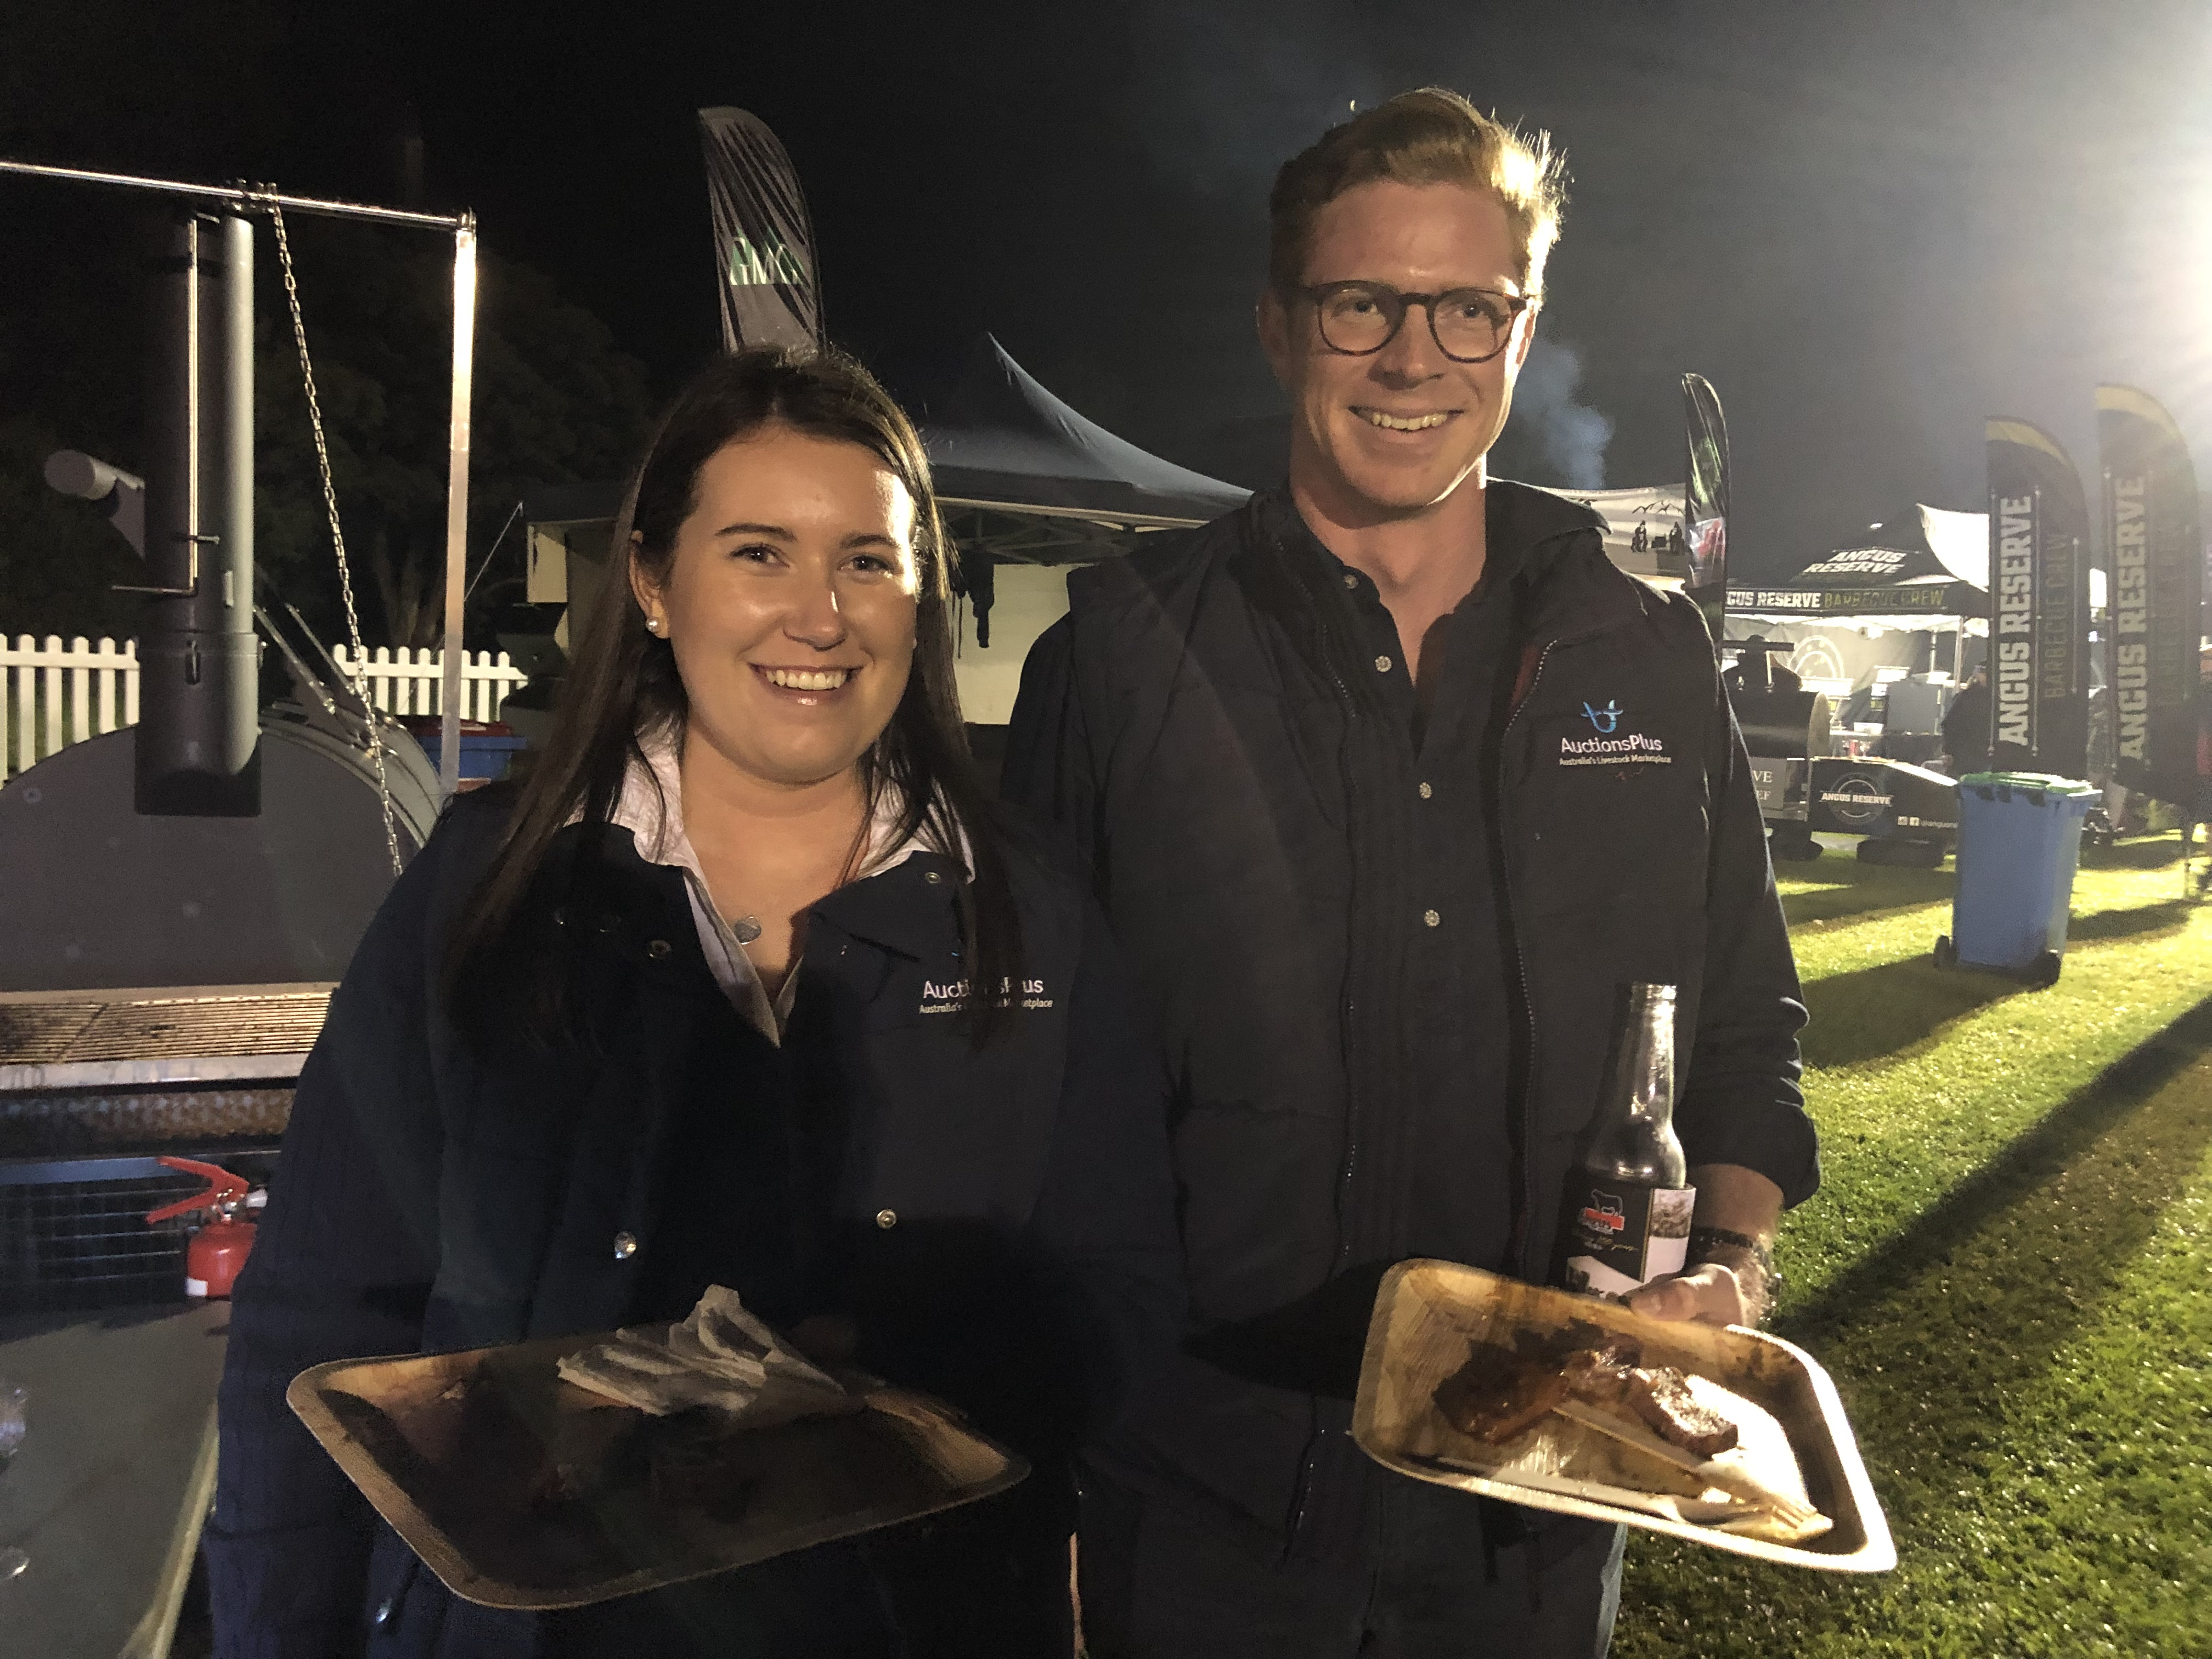 Hannah Bird and Hamish Cooke of AuctionsPlus enjoying the dinner